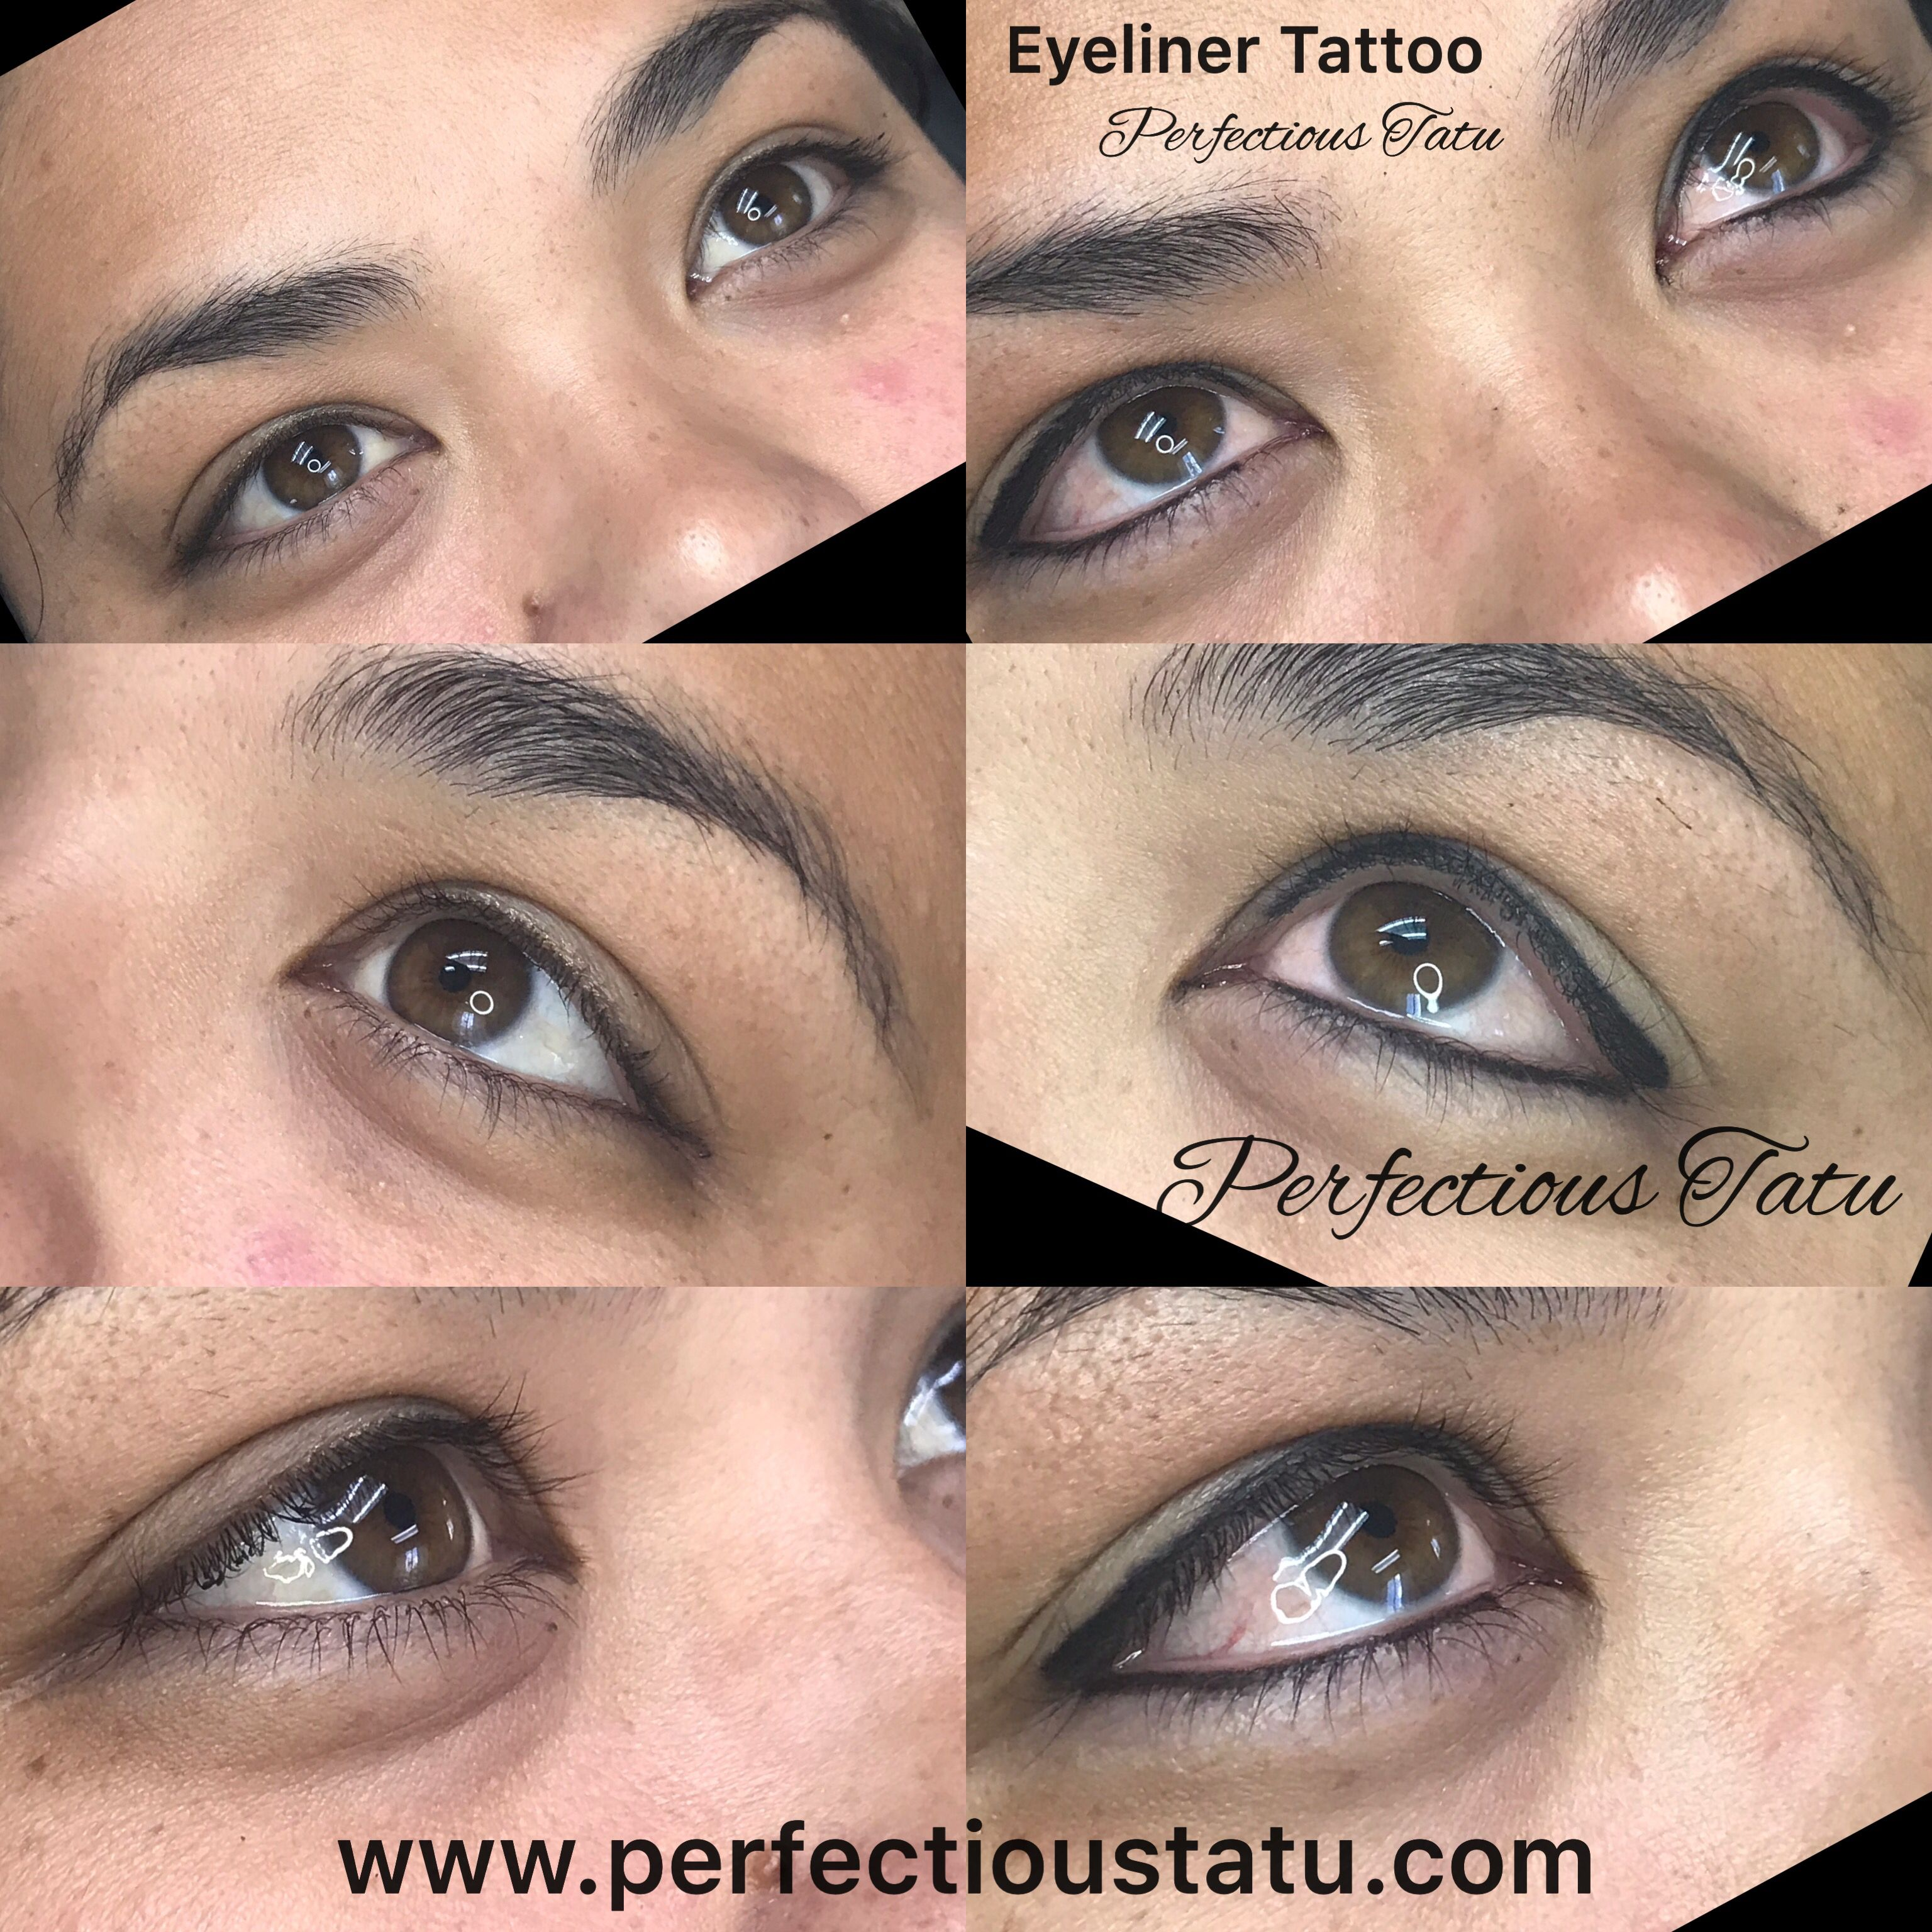 Top and Bottom Eyeliner beautifulmakeup eyeliner